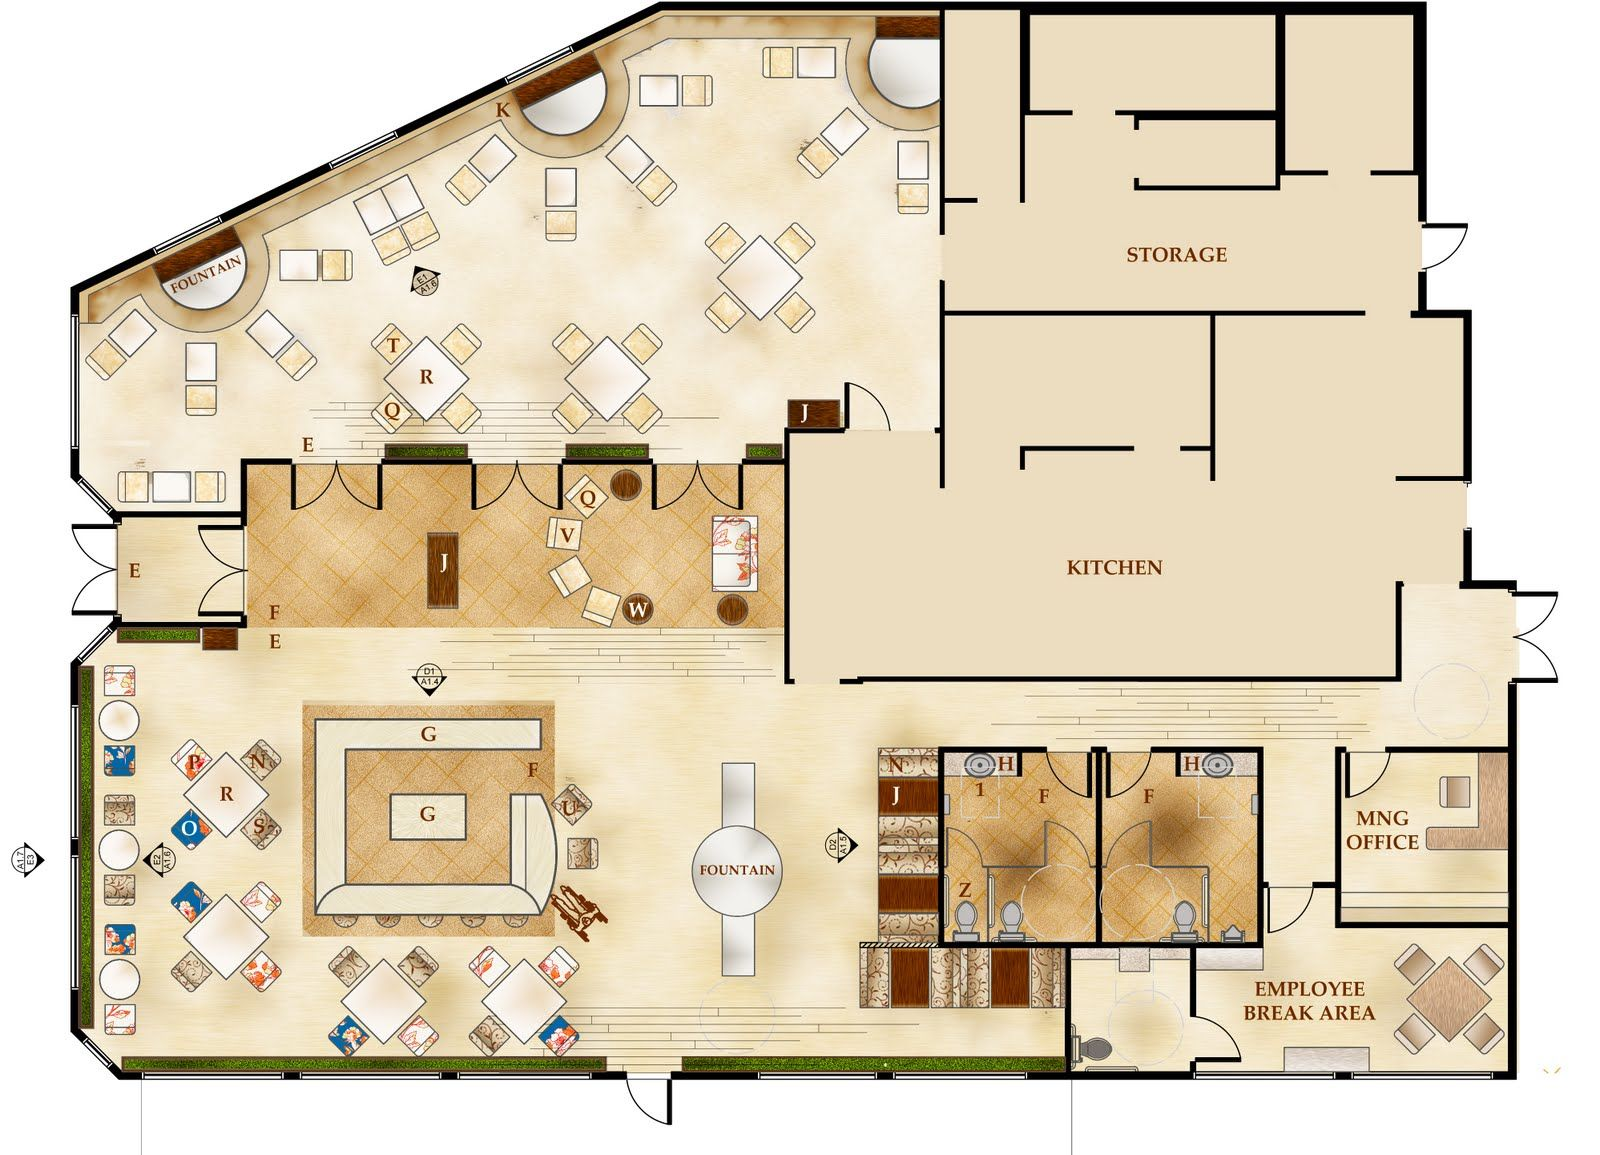 Giovanni italian restaurant floor plans architecture for Blueprint drawing program